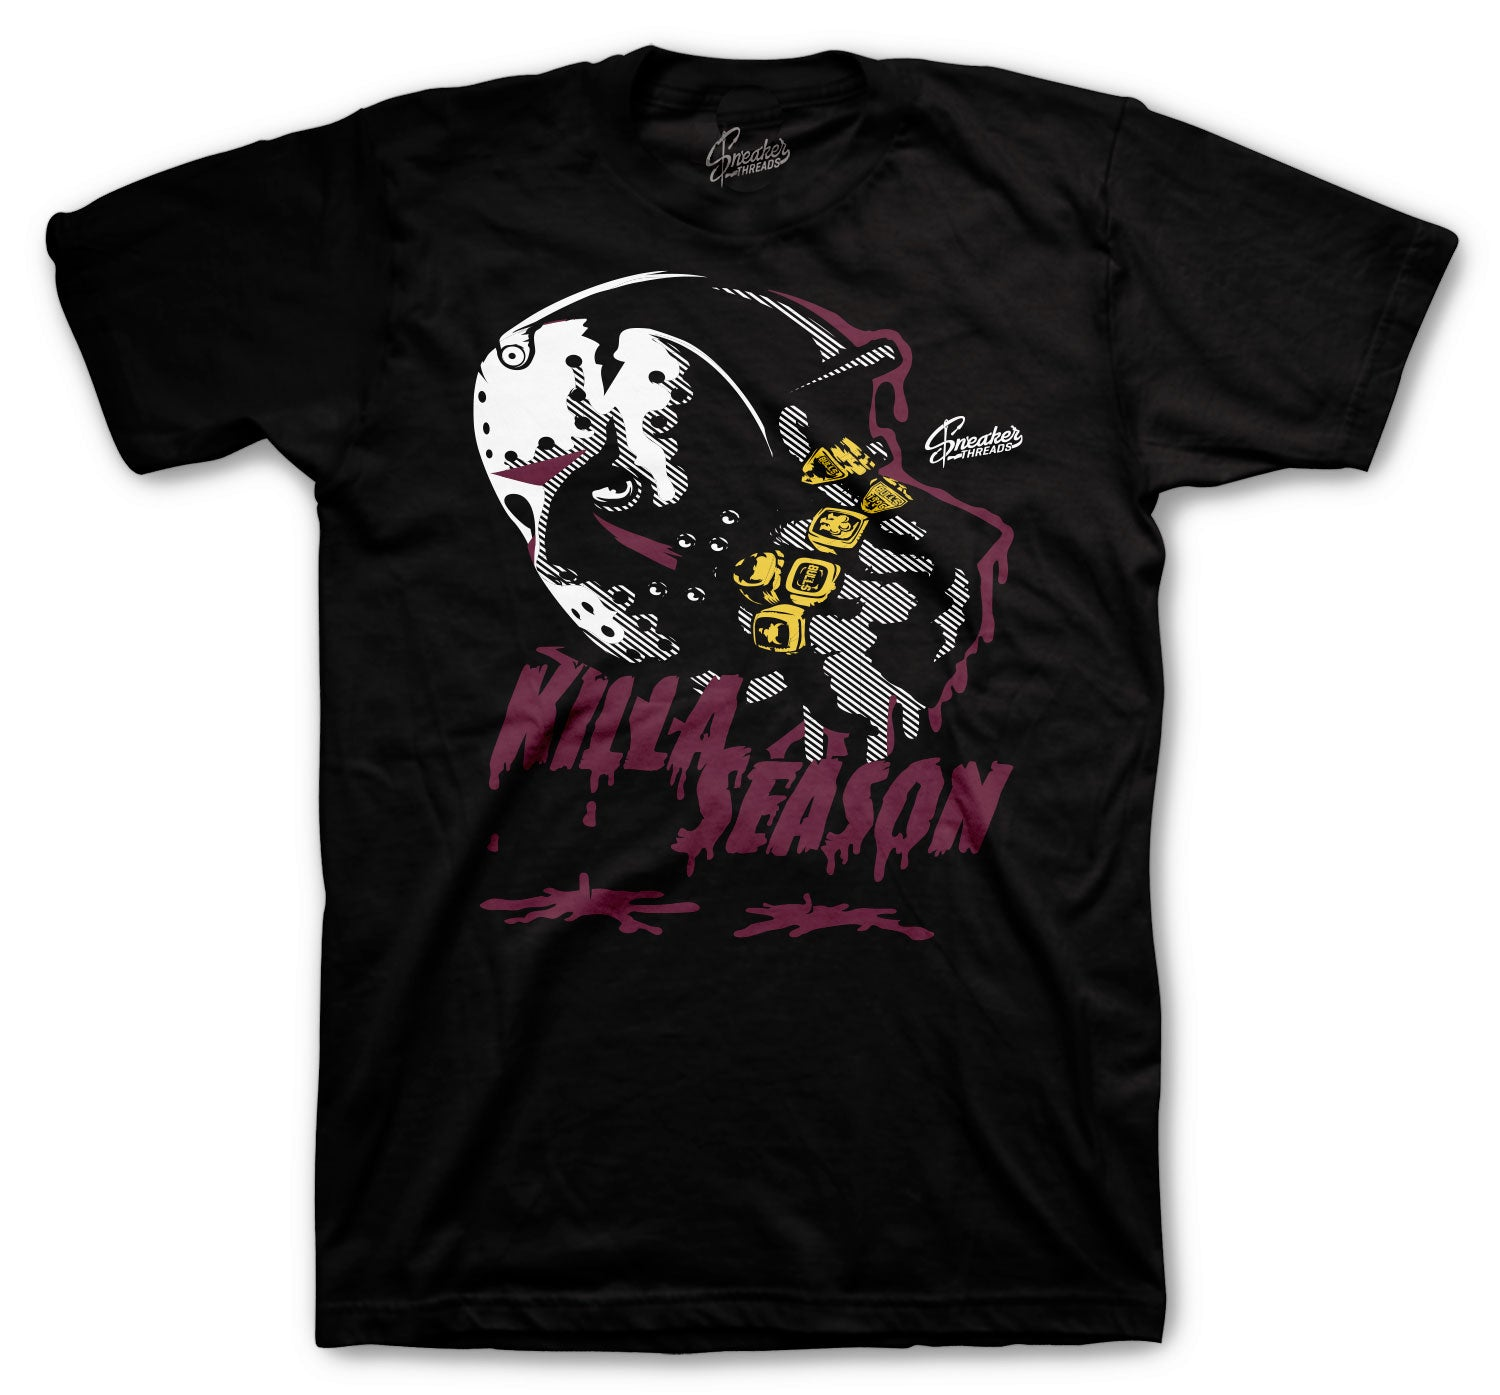 Jordan 4 PSG Shirt - Killa Season - Black